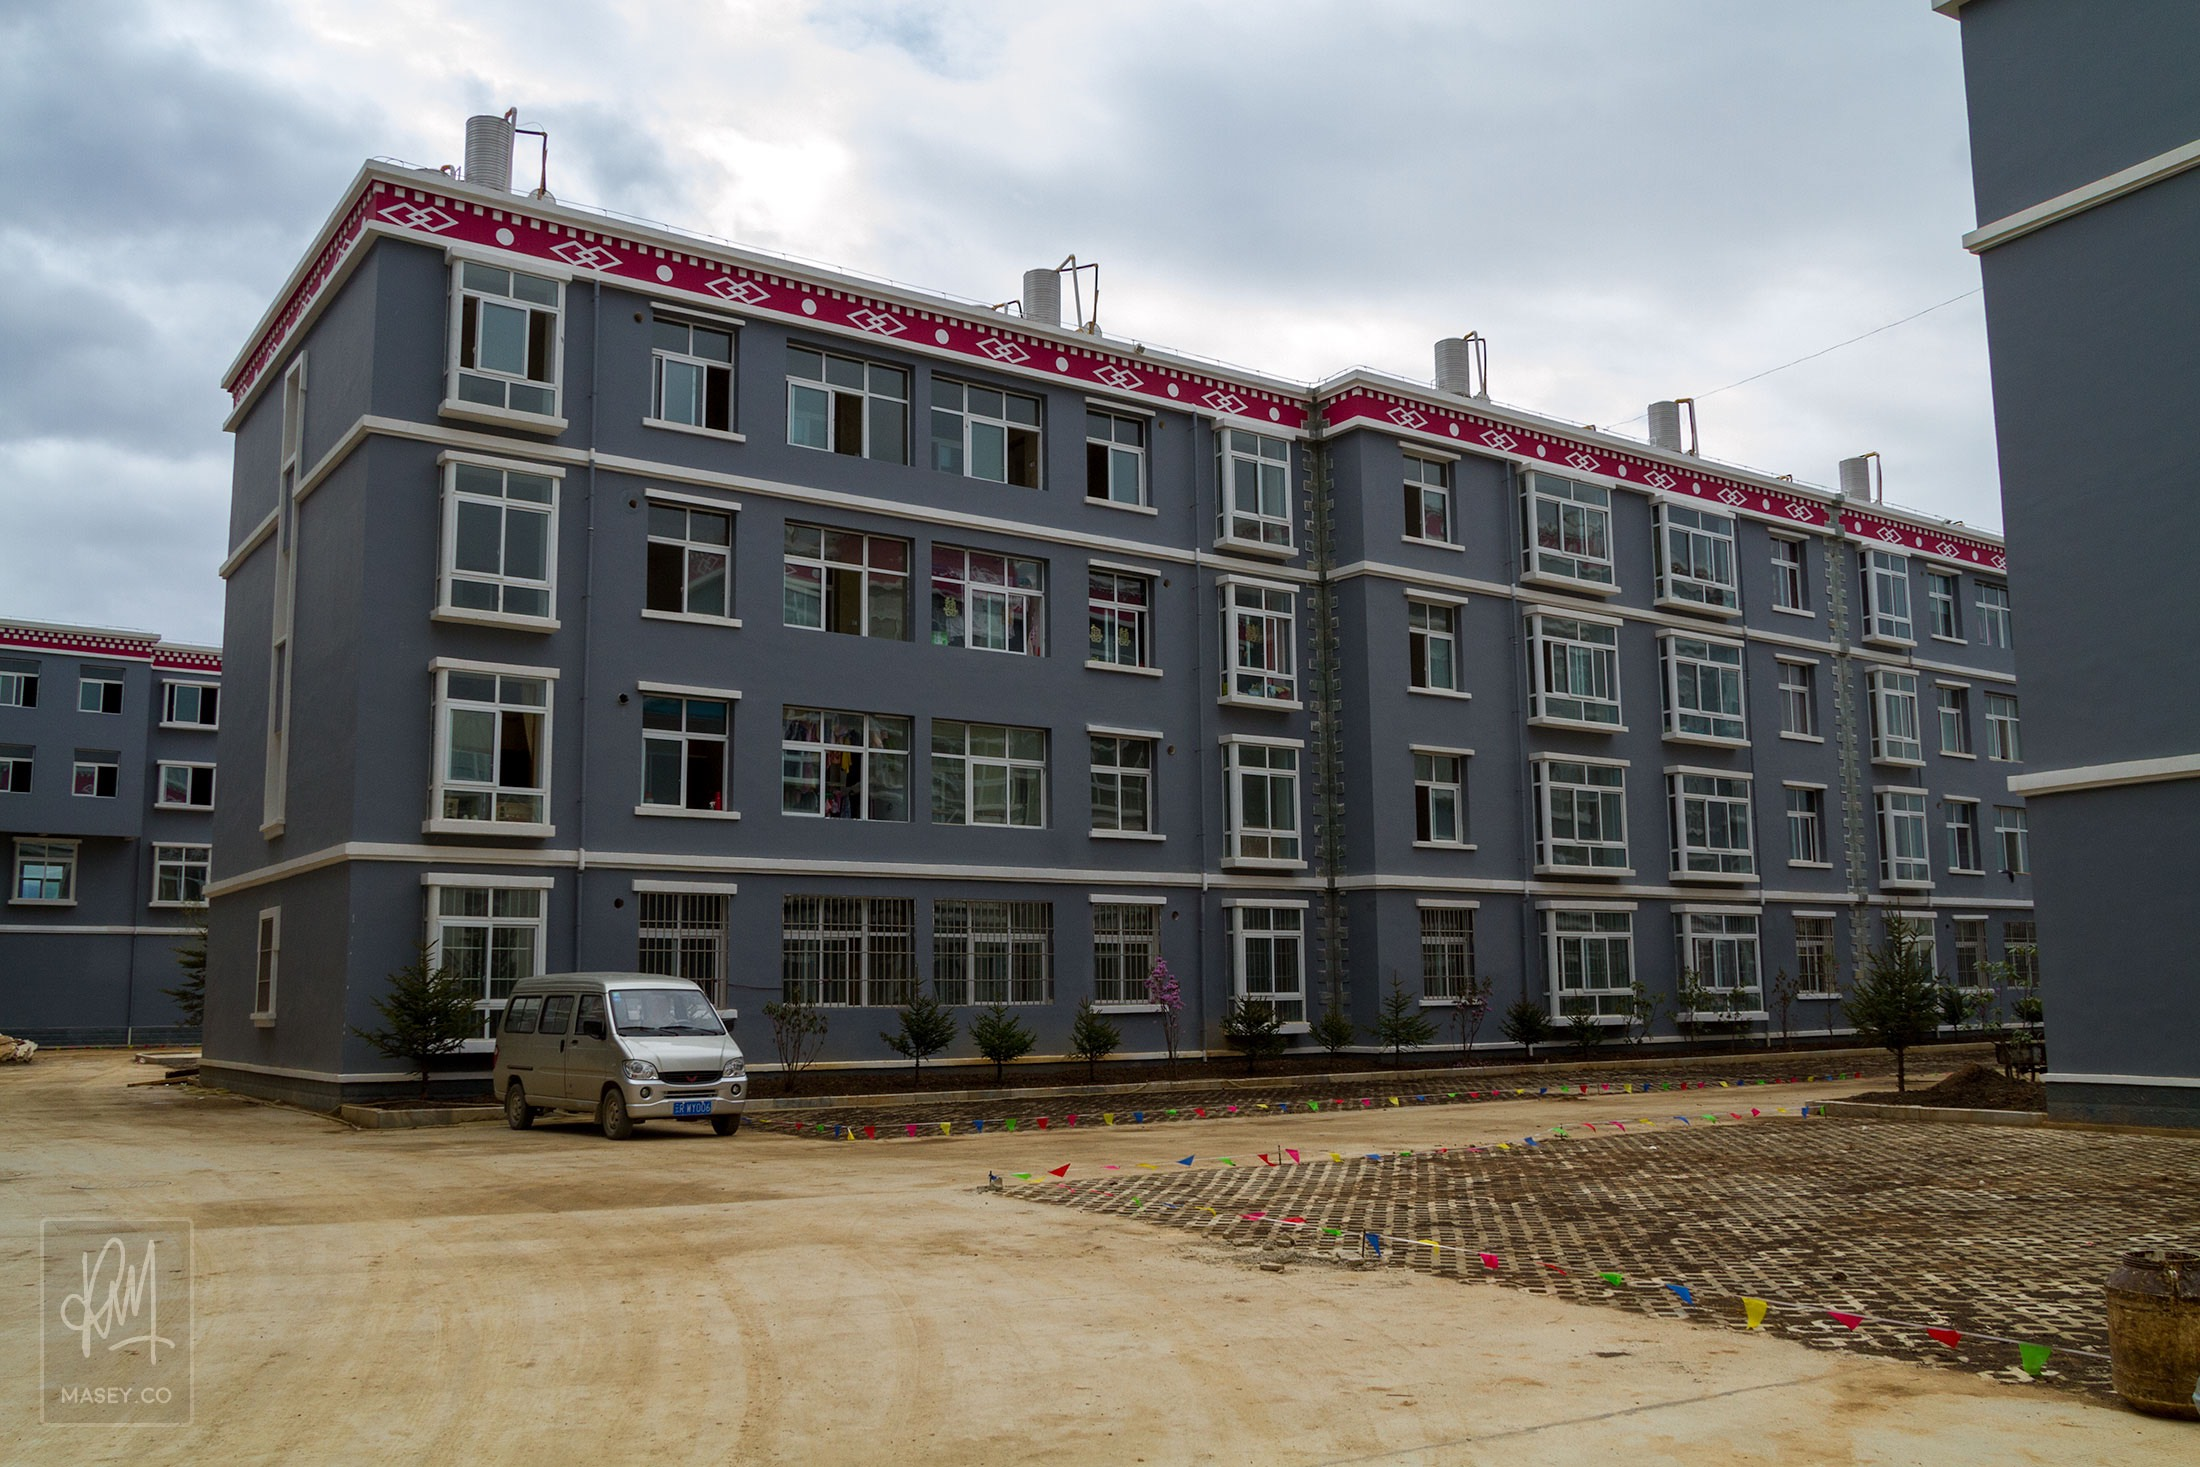 Eastern Tibet Training Institute